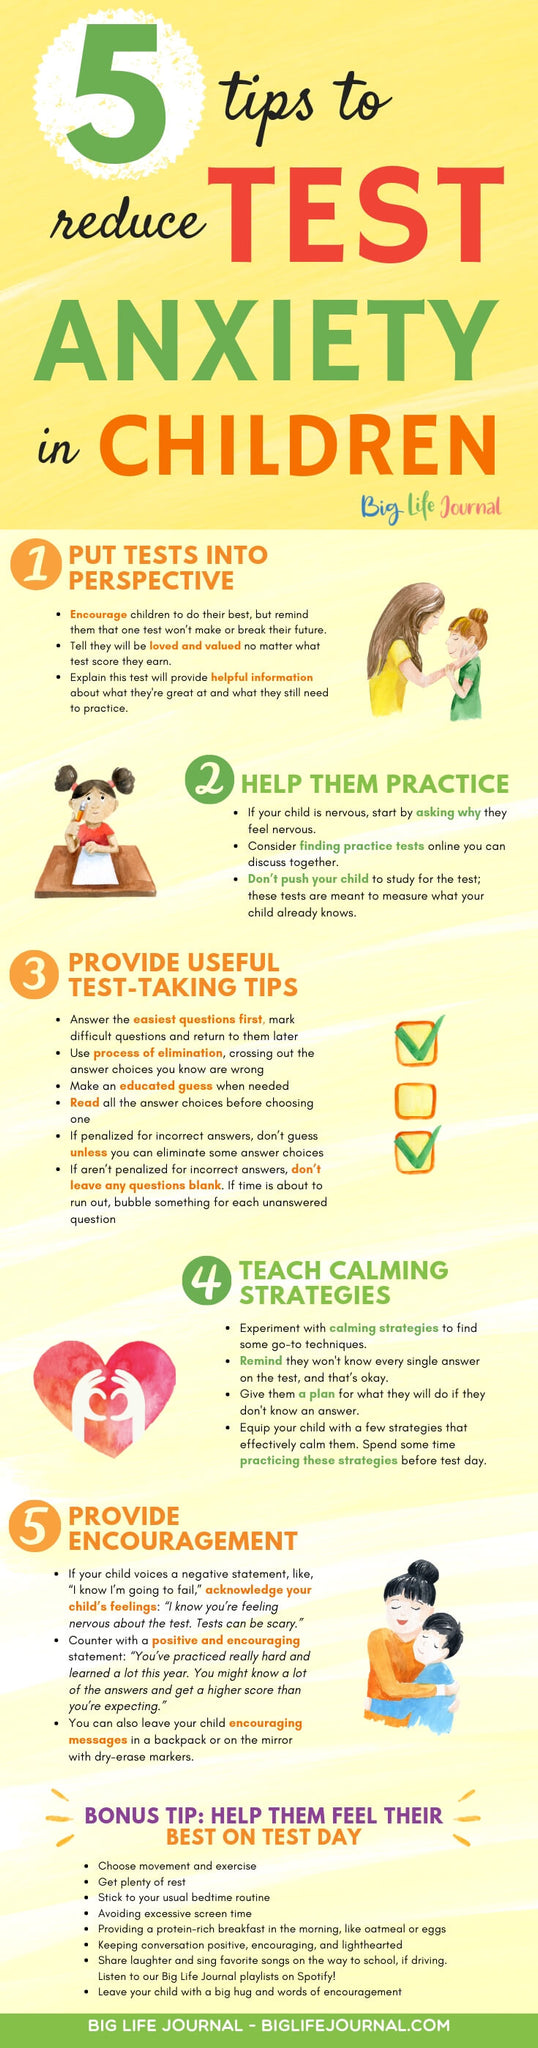 5 Tips to Reduce Test Anxiety in Children